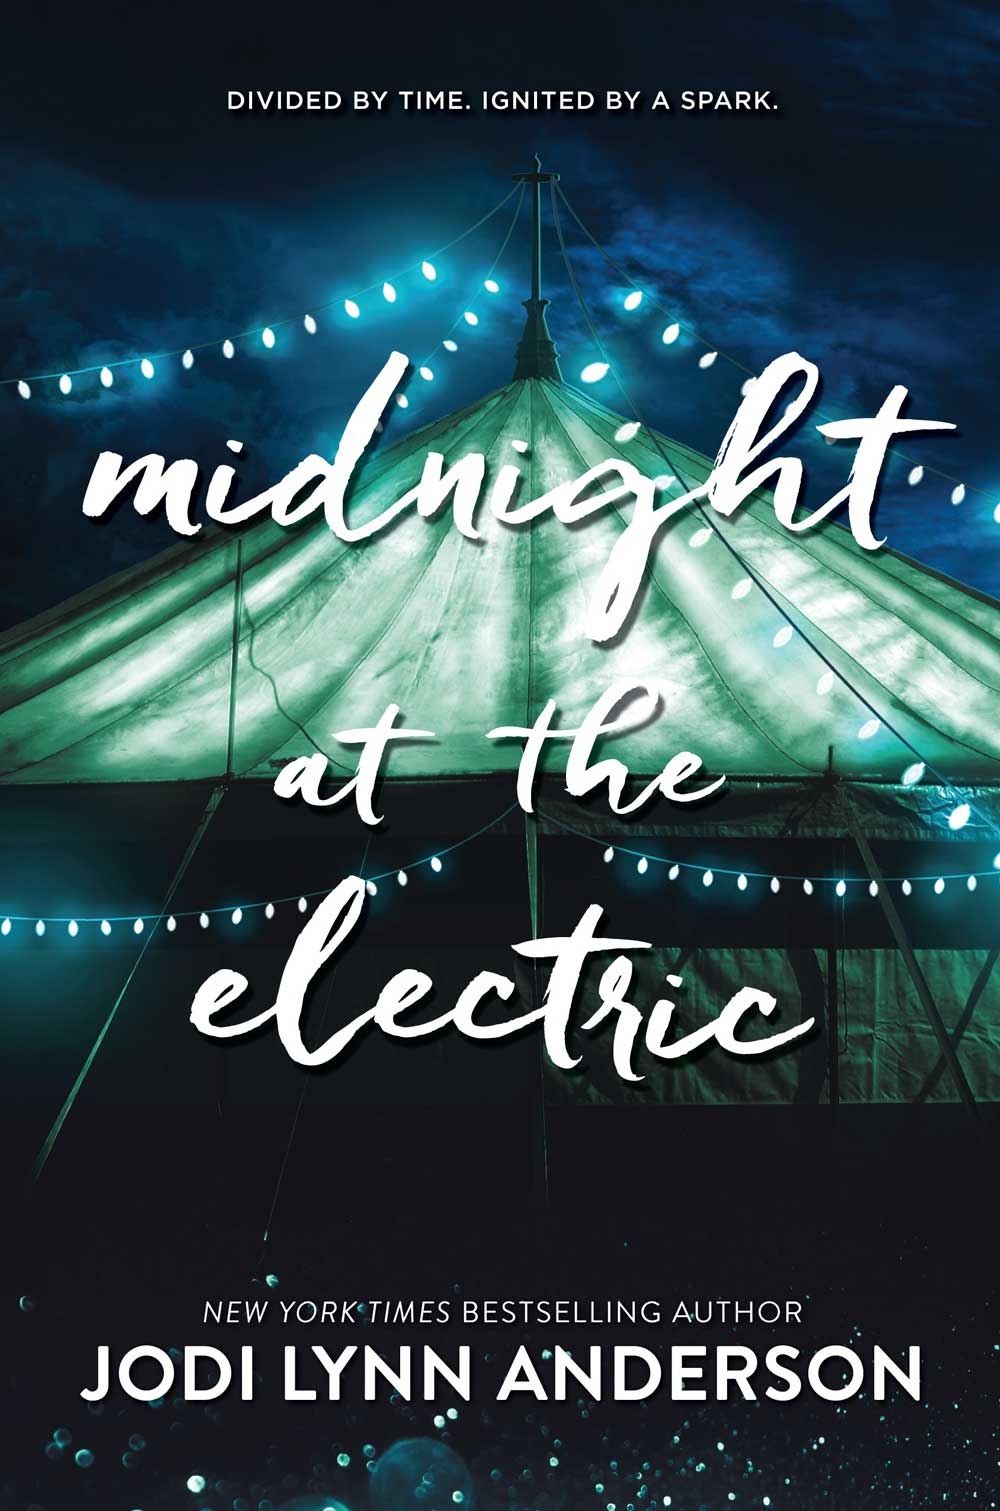 MidnightElectric-Cover.jpg